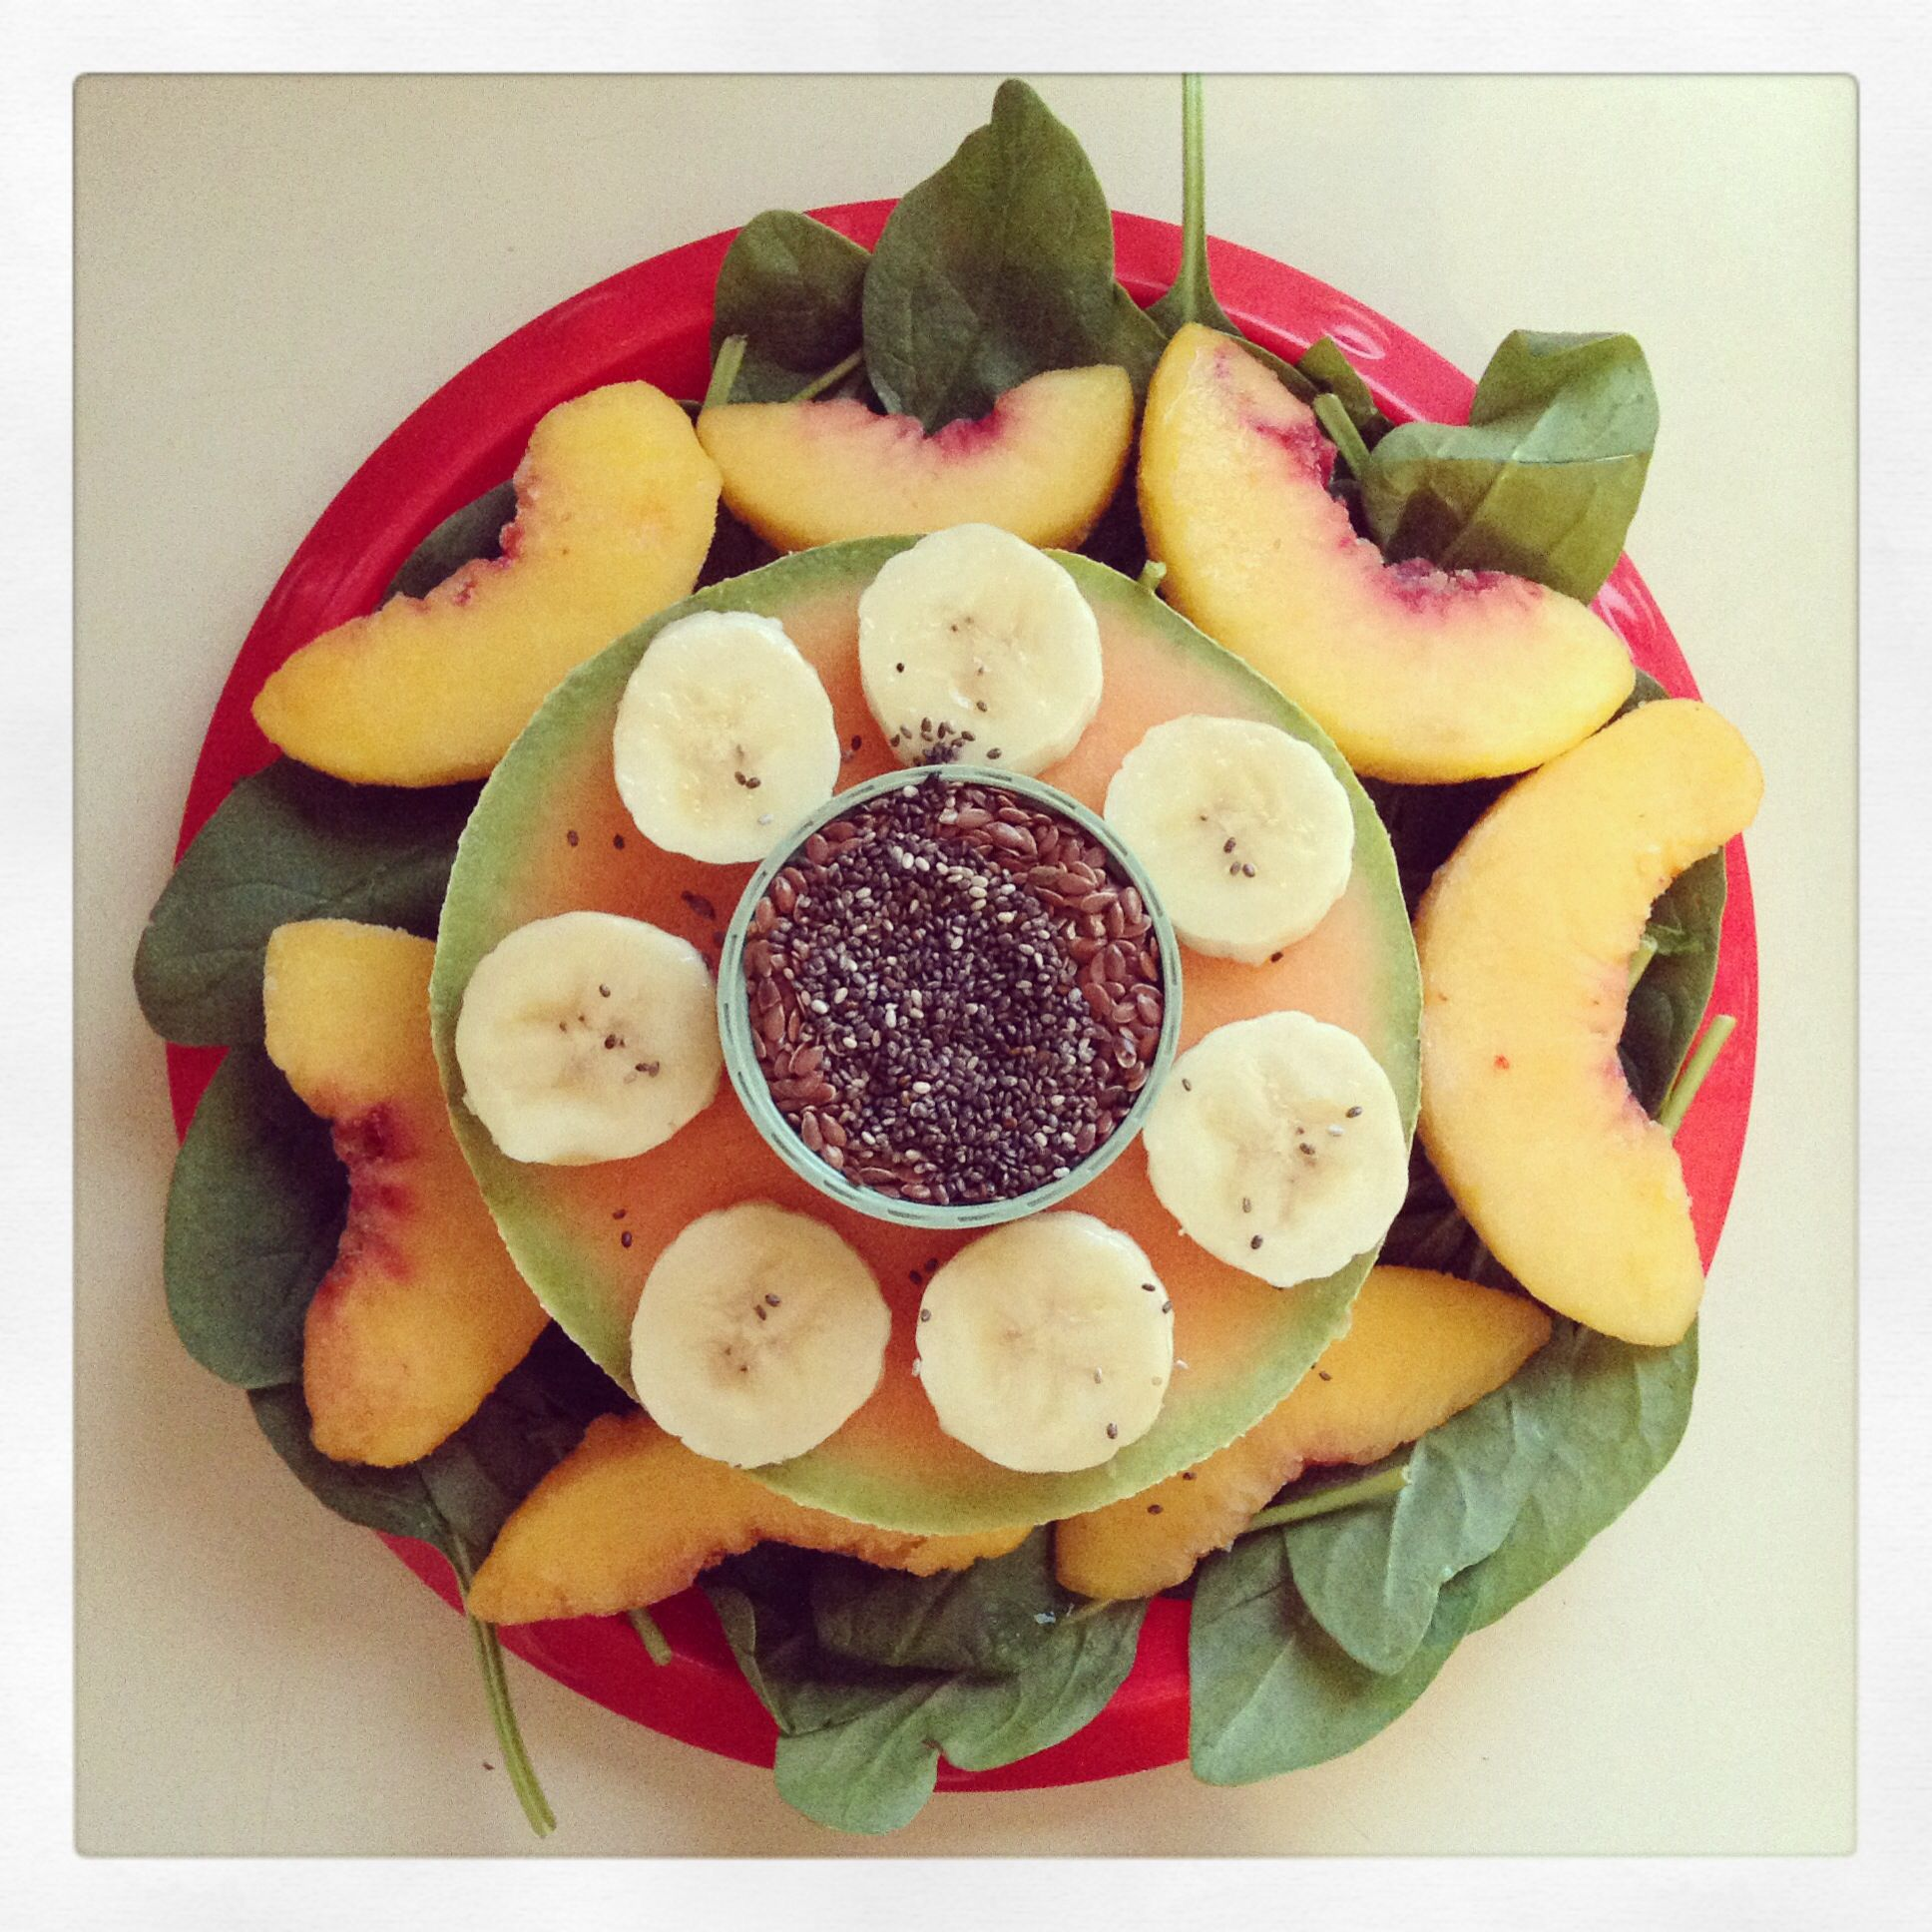 Green Smoothie: Baby Spinach, Banana, Cantaloupe, Frozen Peaches, Chia Seeds, Flax Seeds, and Water -Drea